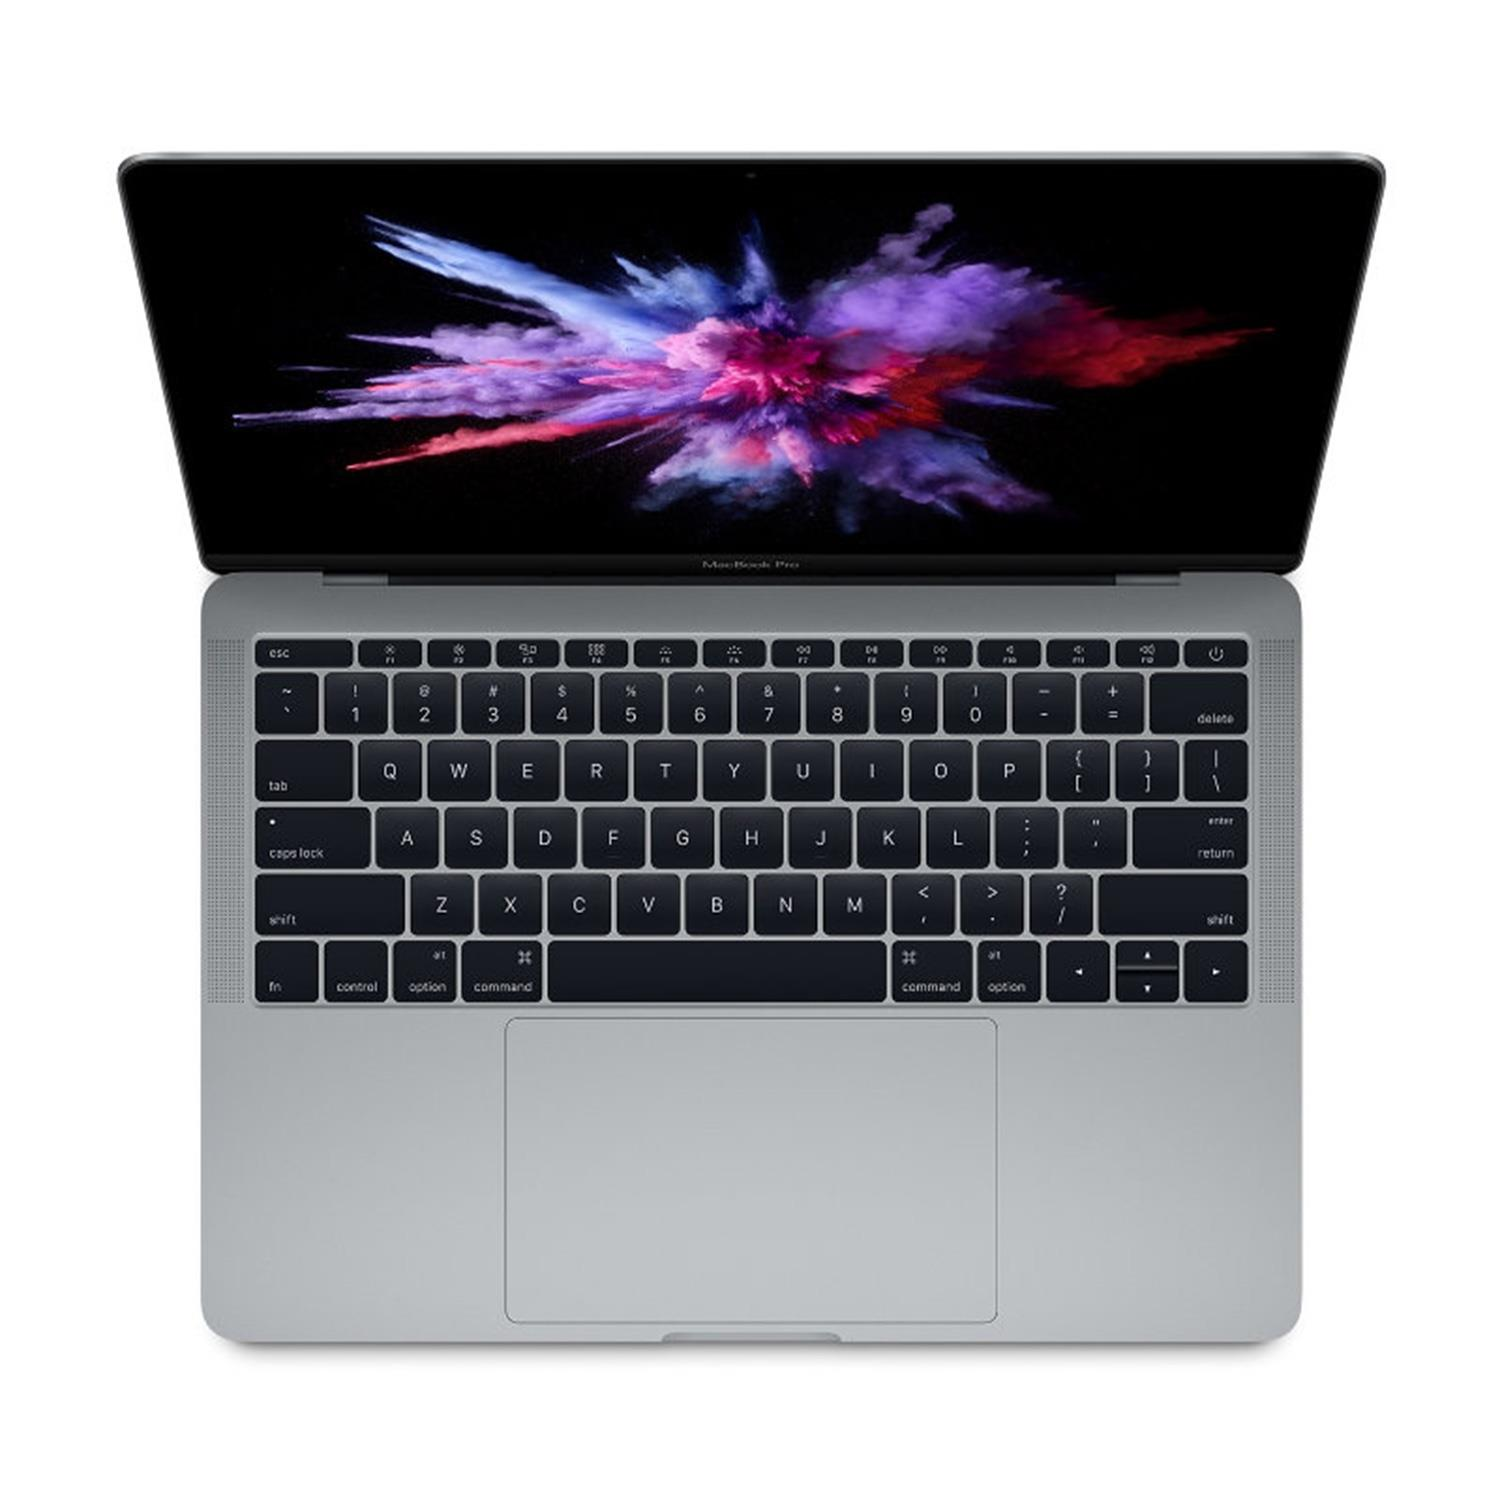 MacBook Pro 13-inch: 2.3GHz dual-core Intel Core i5, 128GB - Space Grey